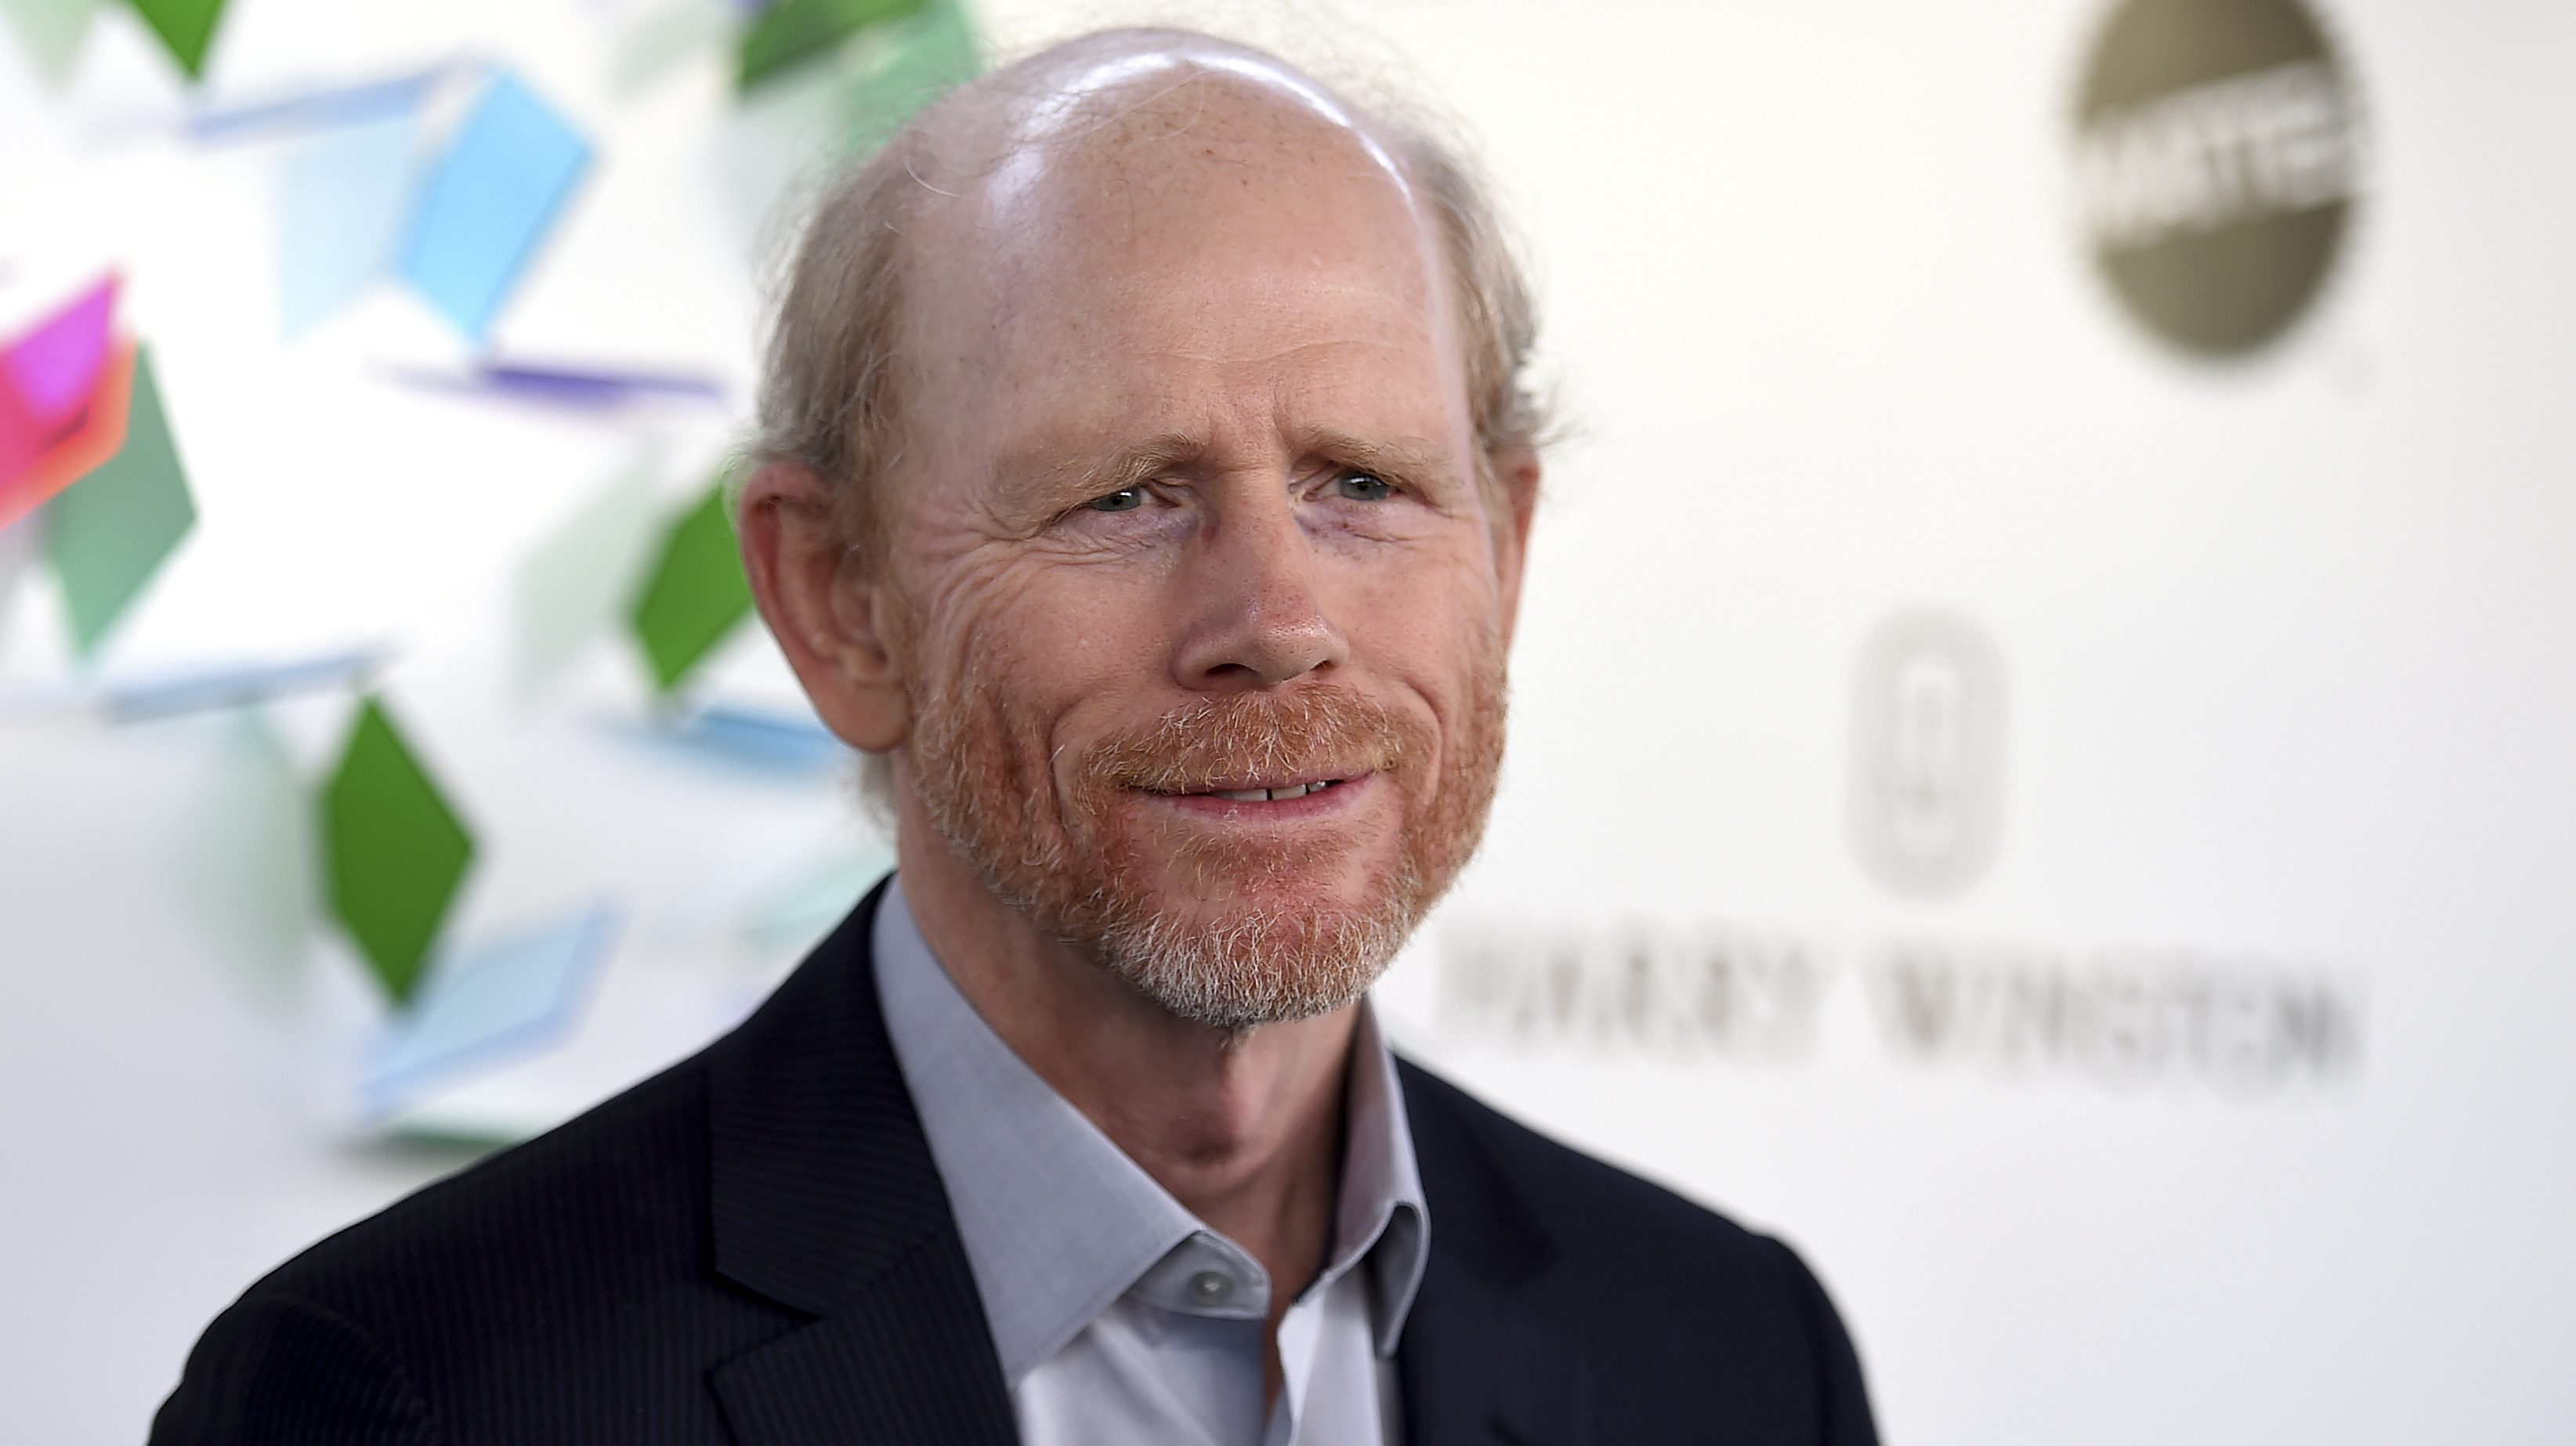 Ron Howard arrives at the Kaleidoscope 5: LIGHT event on Saturday, May 6, 2017 in Culver City, Calif. (Photo by Jordan Strauss/Invision/AP)